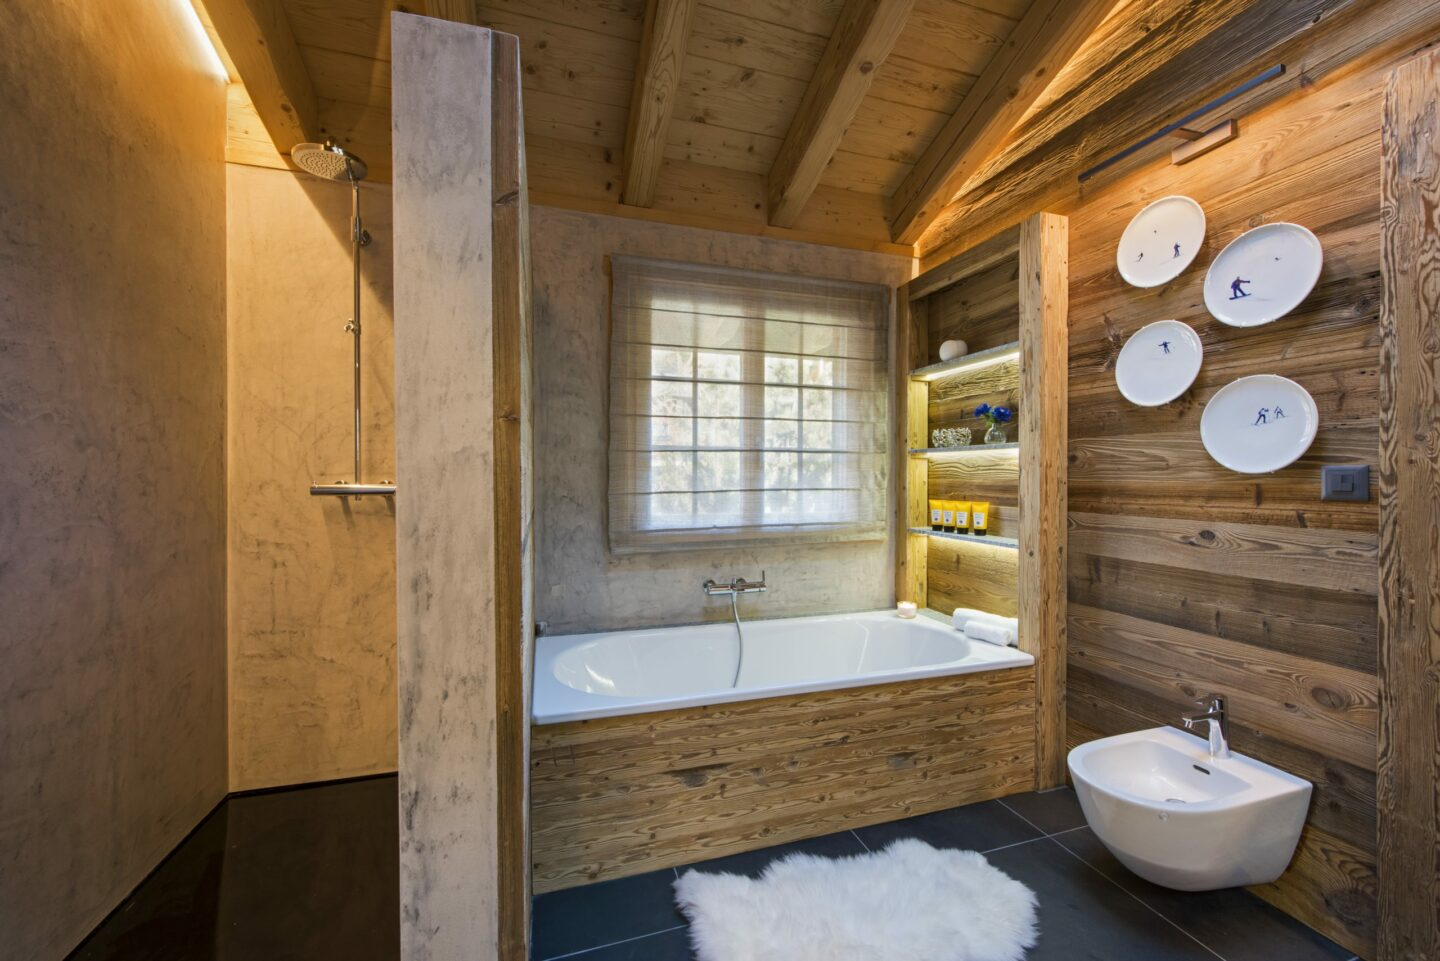 Ensuite bathroom with shower and bath tub at Chalet Daphne in Verbier